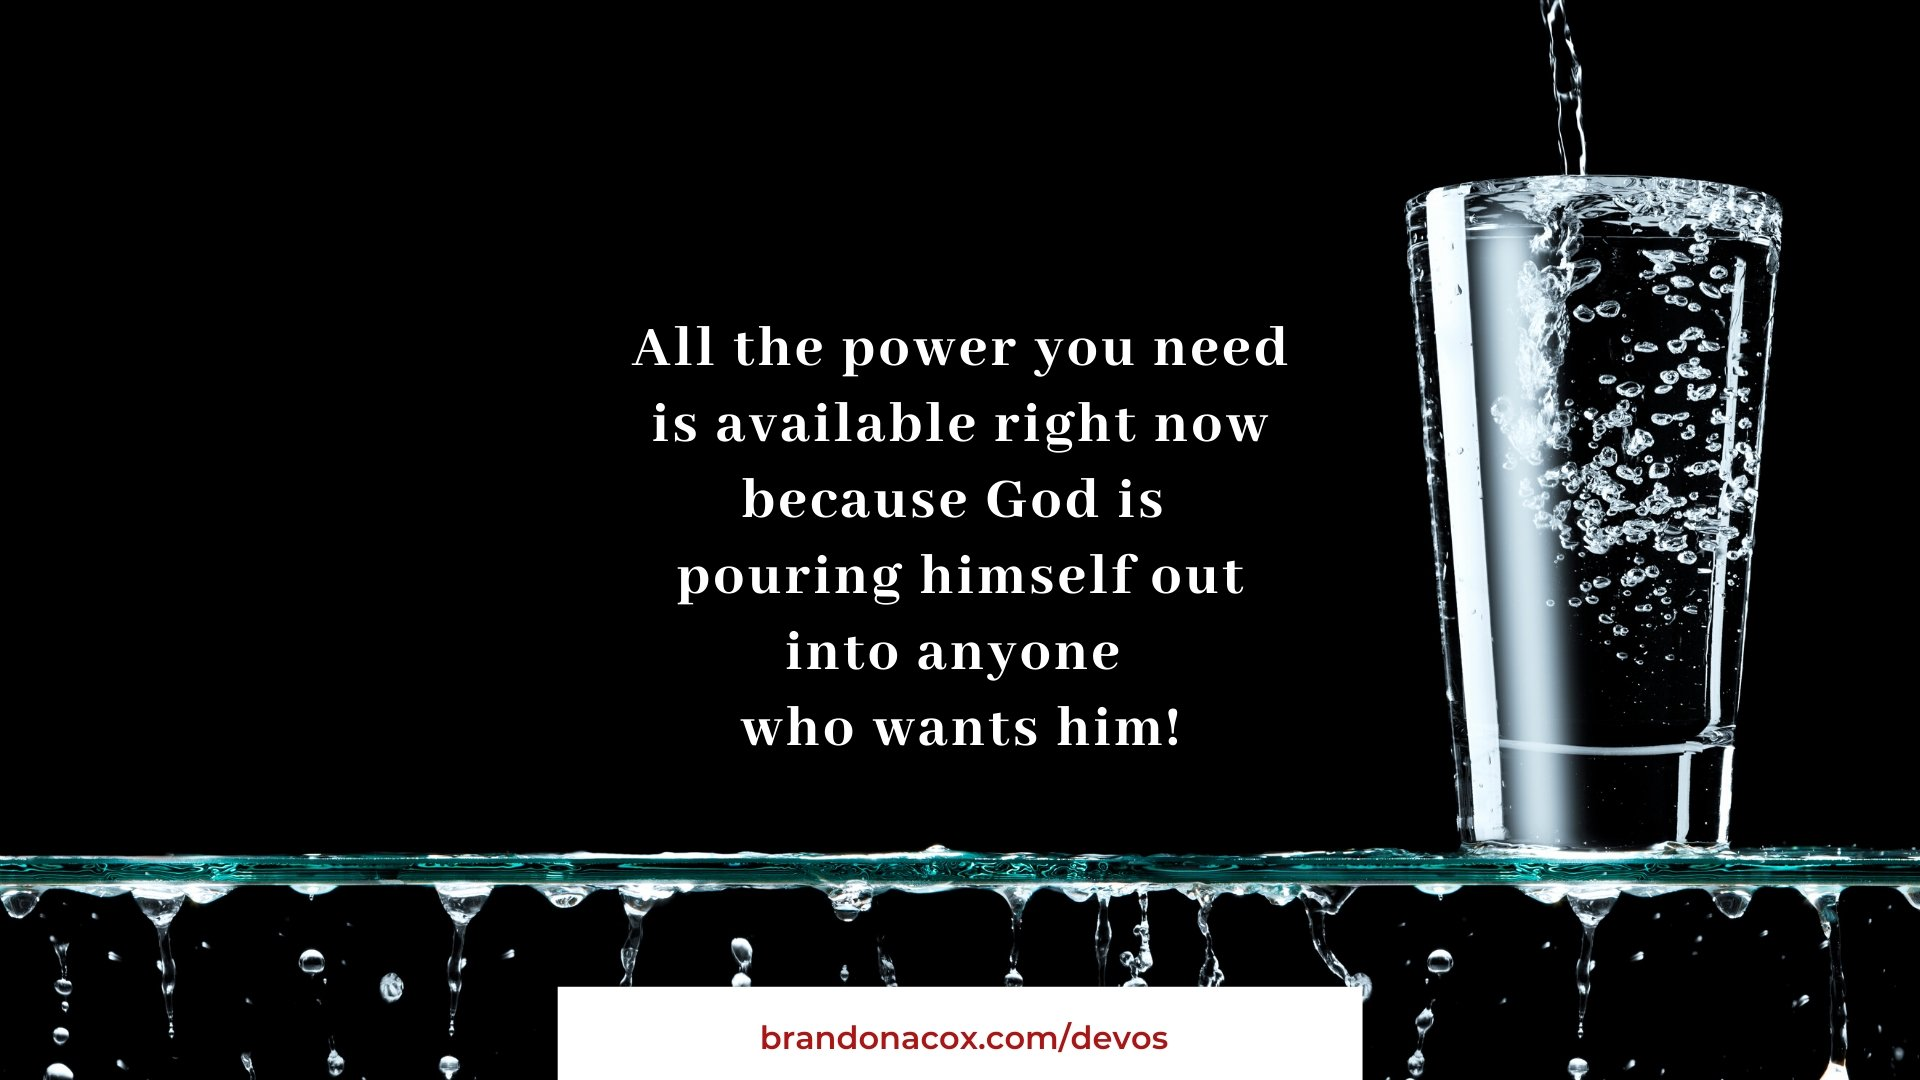 Pouring Out His Power